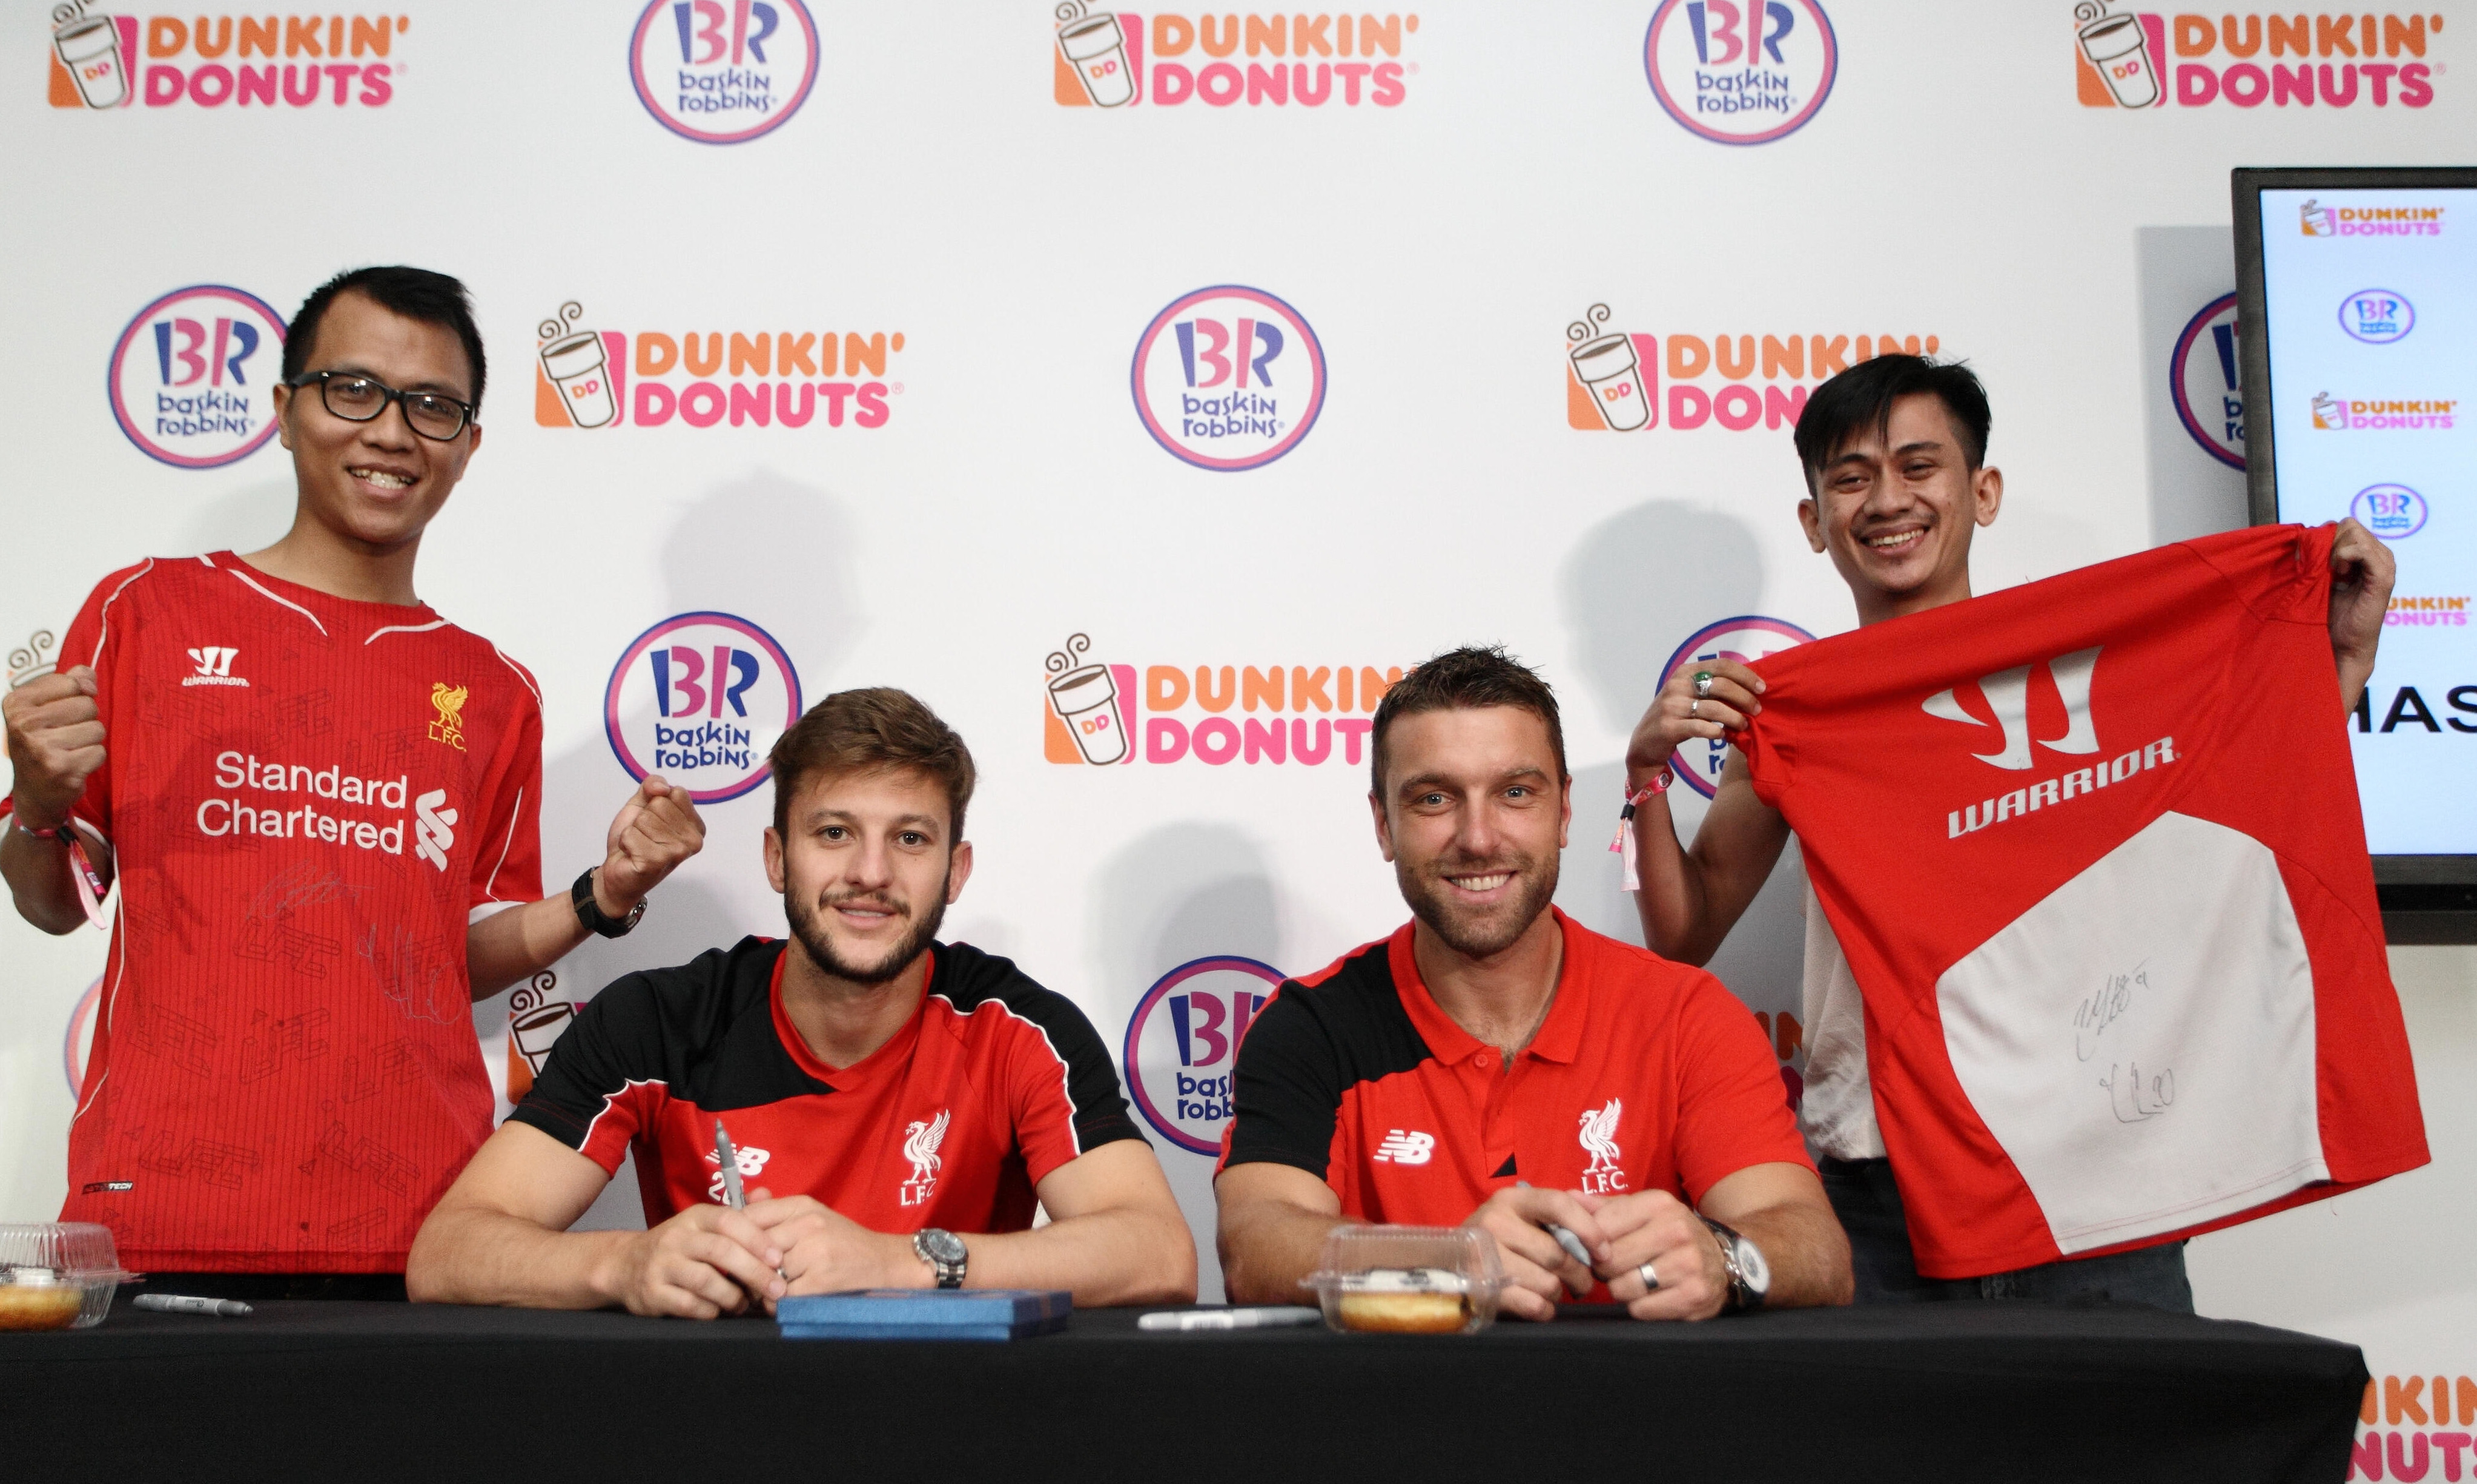 Malaysian Liverpool Fc Fans Get To Meet Their Favourite Players